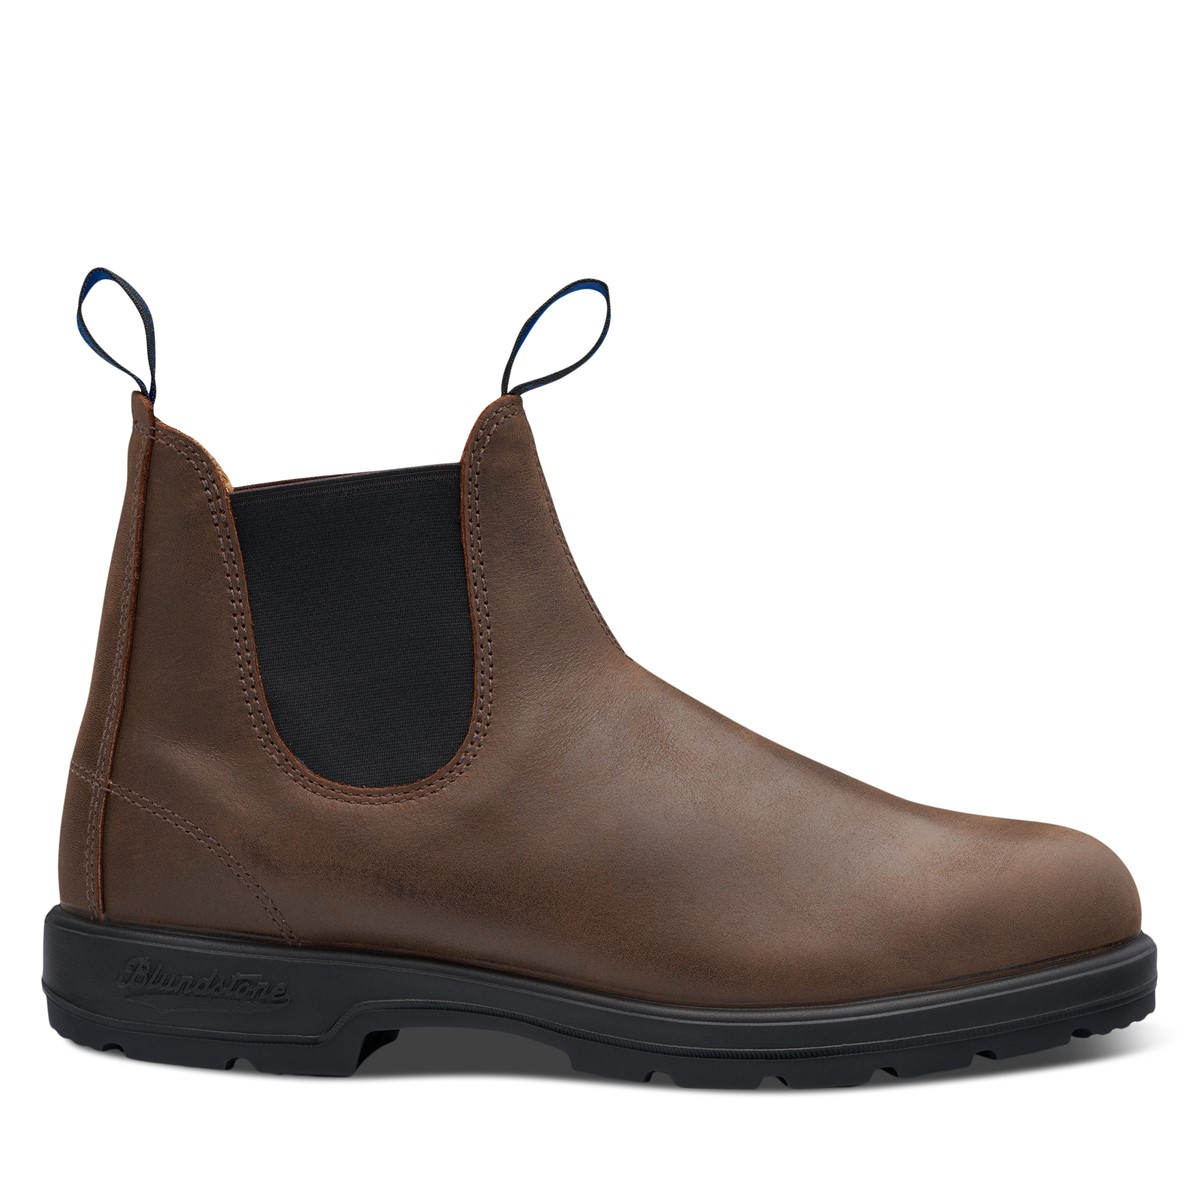 1477 Chelsea Boots in Antique Brown